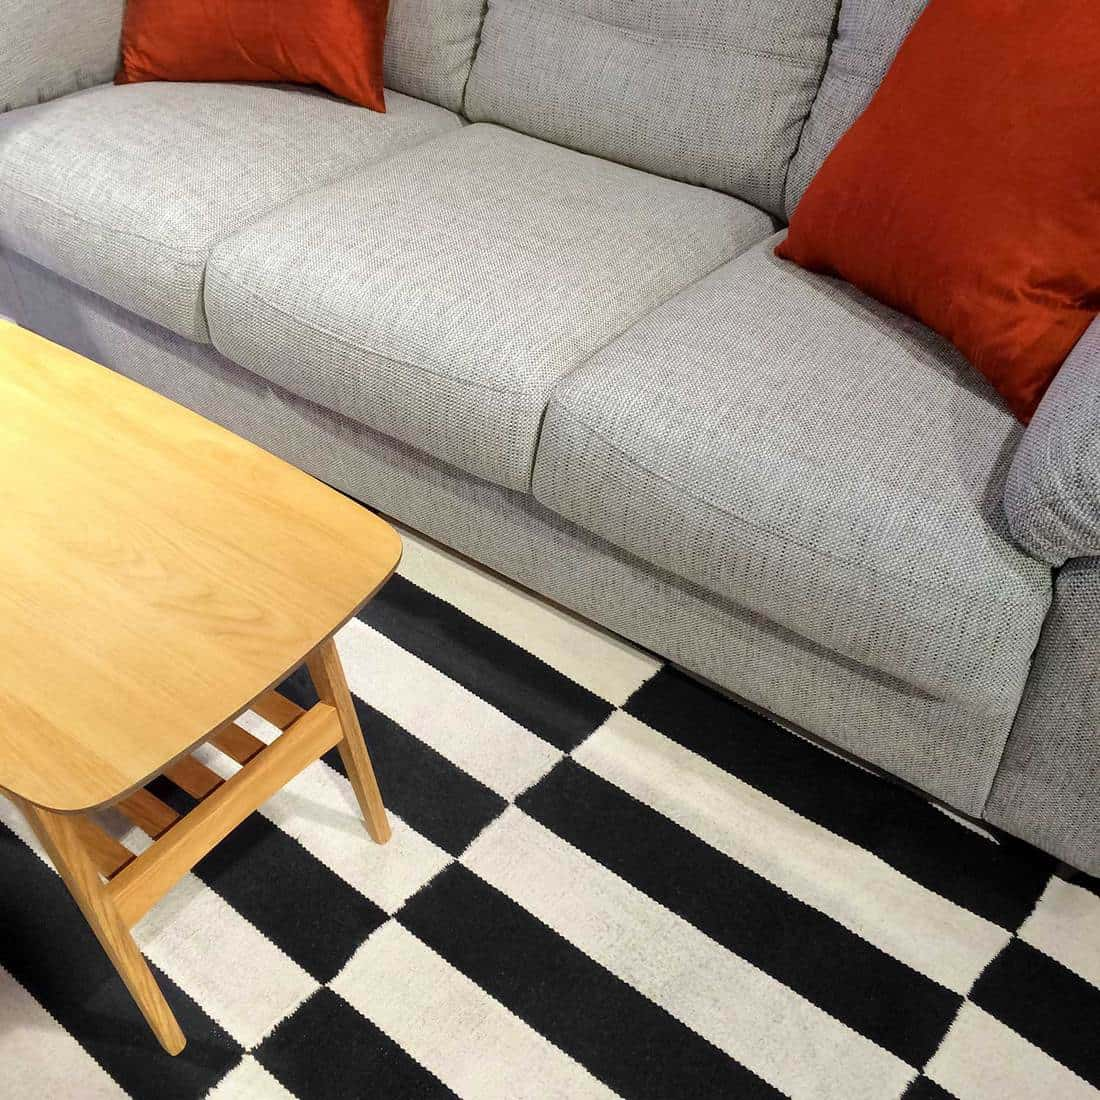 Modern grey sofa with orange cushion pillow and coffee table on striped carpet